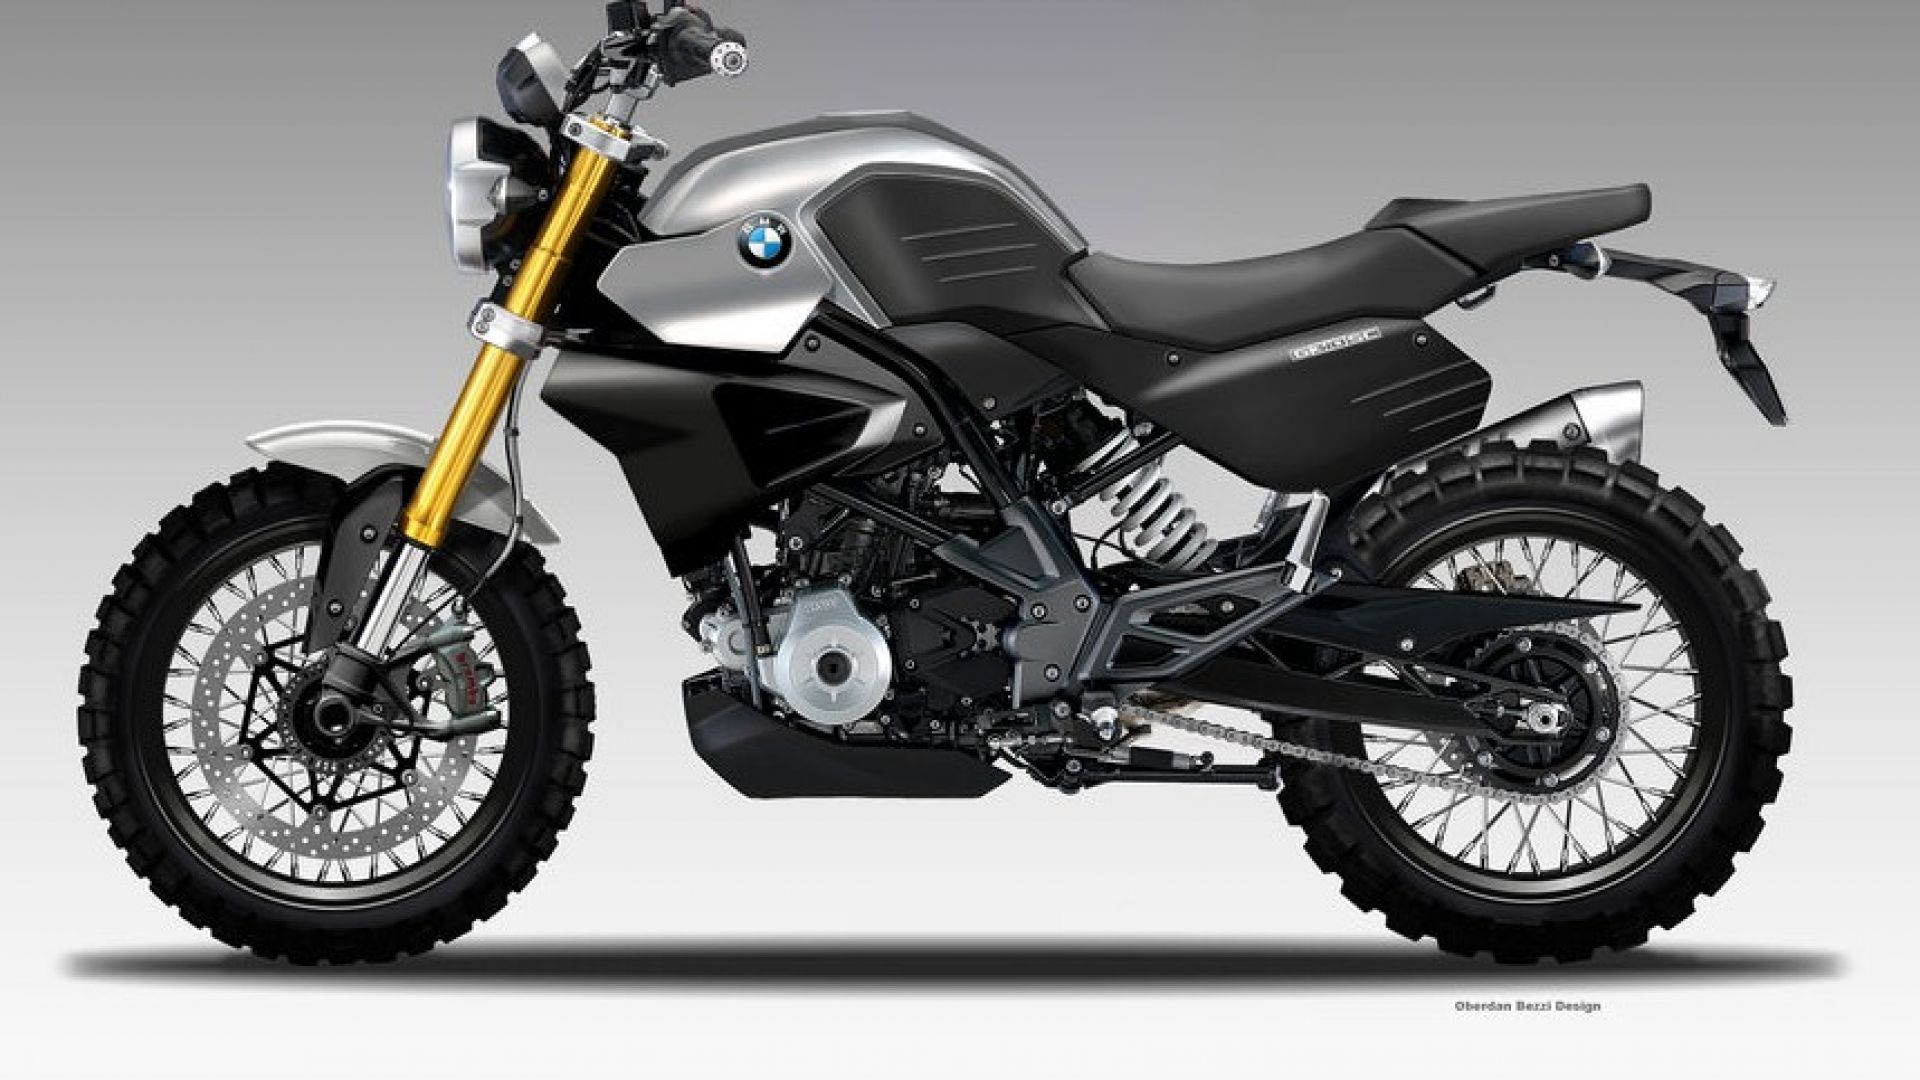 rendering bmw g310 sc scrambler by oberdan bezzi motorbox. Black Bedroom Furniture Sets. Home Design Ideas